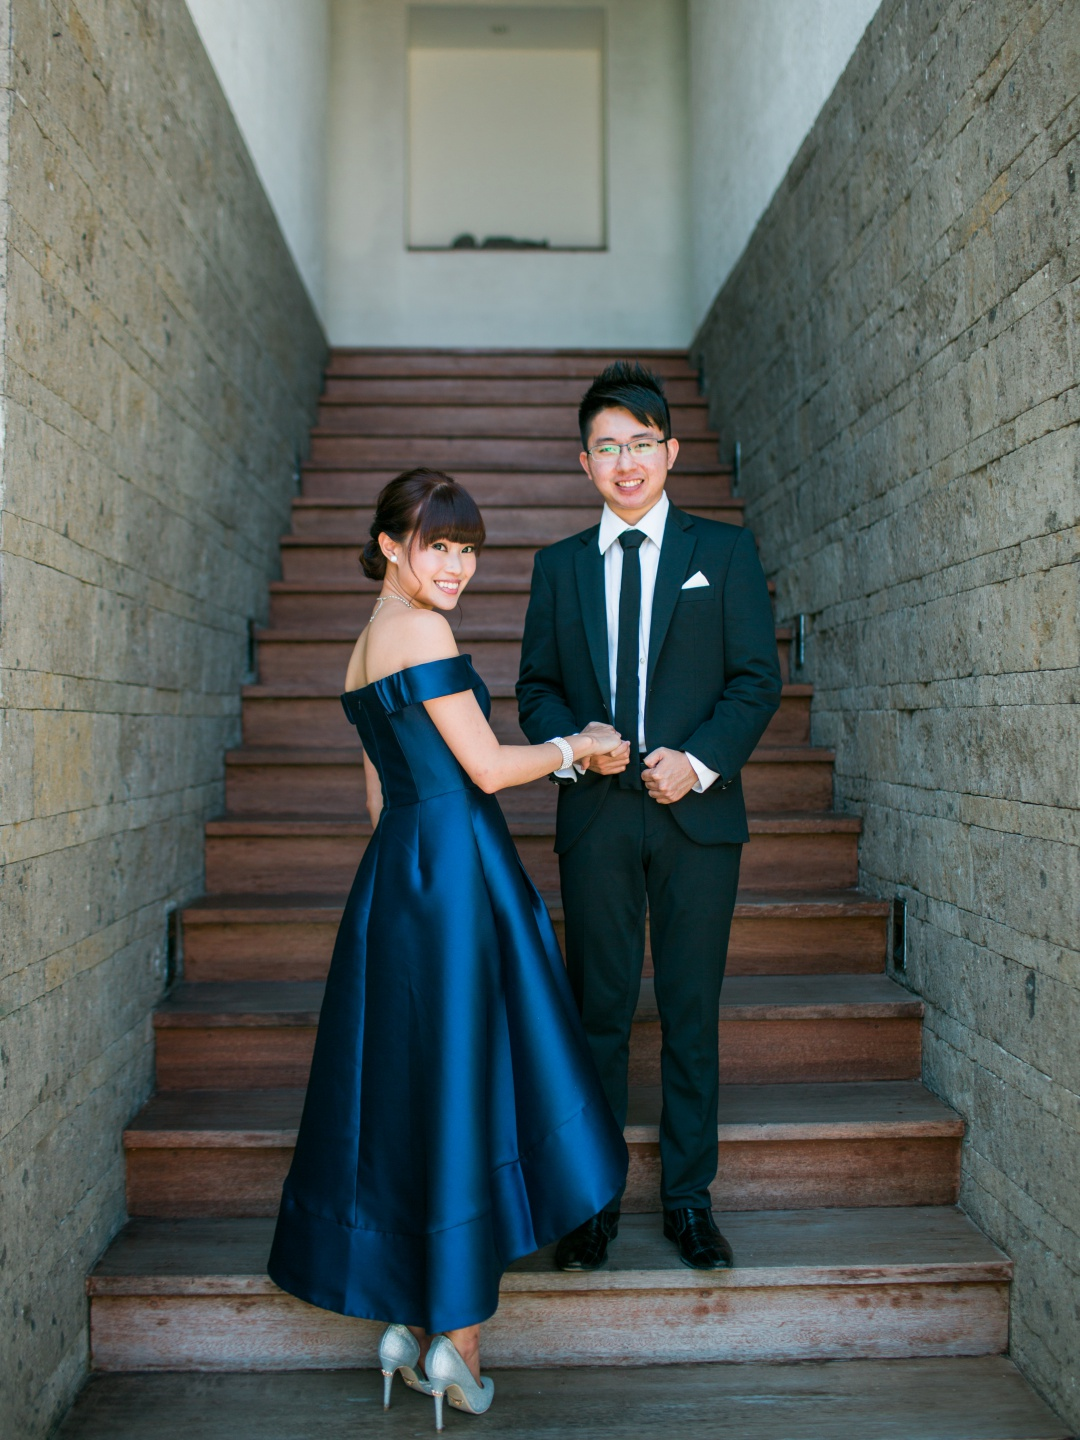 Pre-wedding Shoot - Tirtha Bridal | joanne-khoo.com